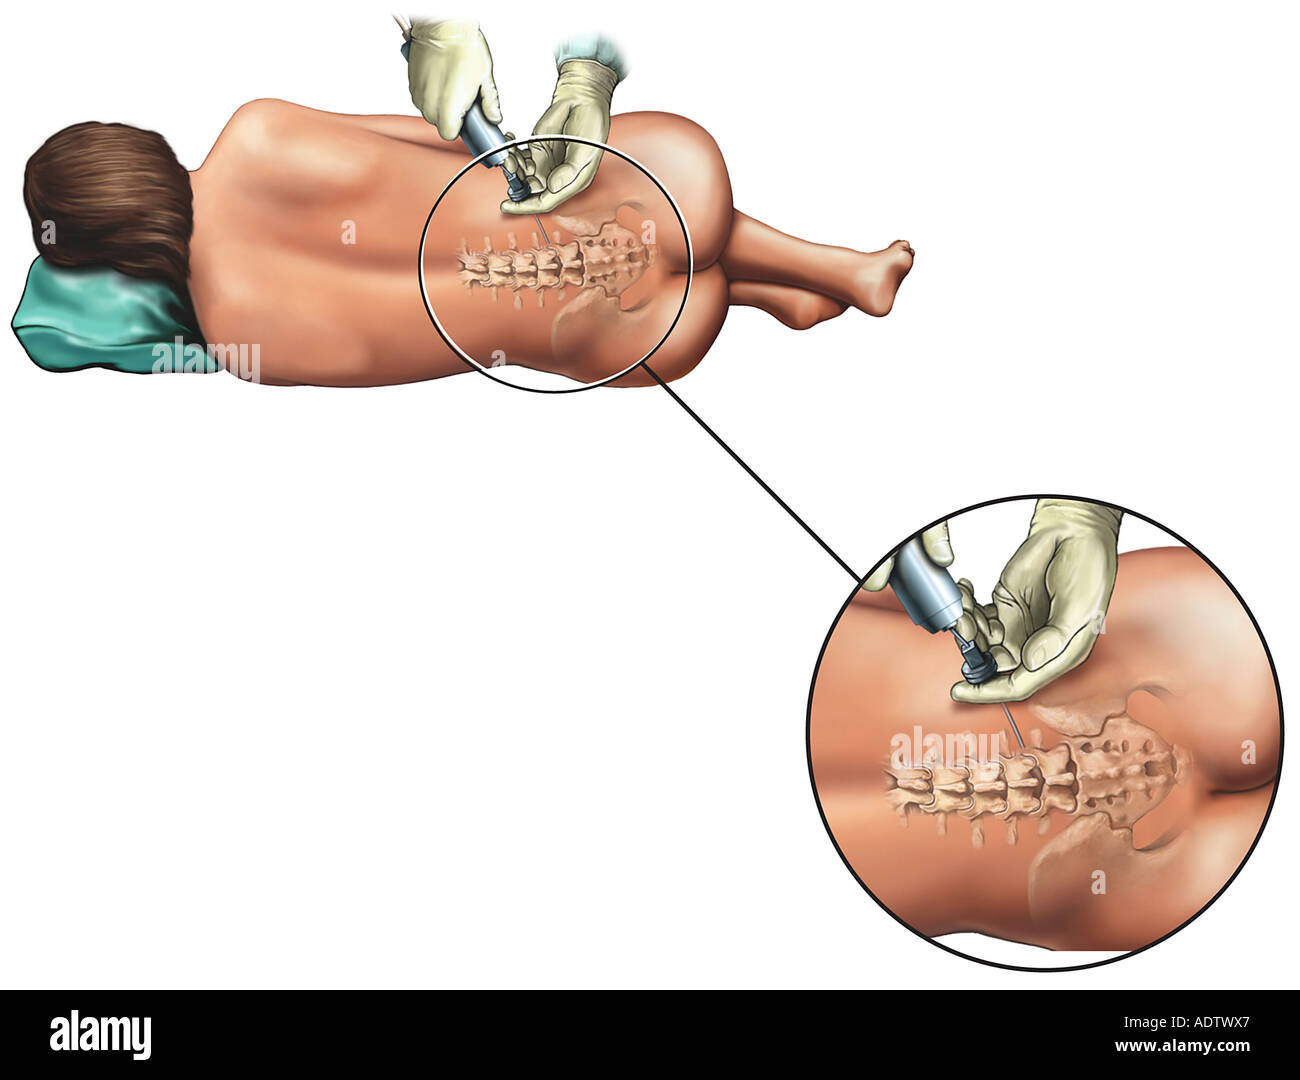 Epidural Nerve Block Injection Stock Photo: 7710566 - Alamy